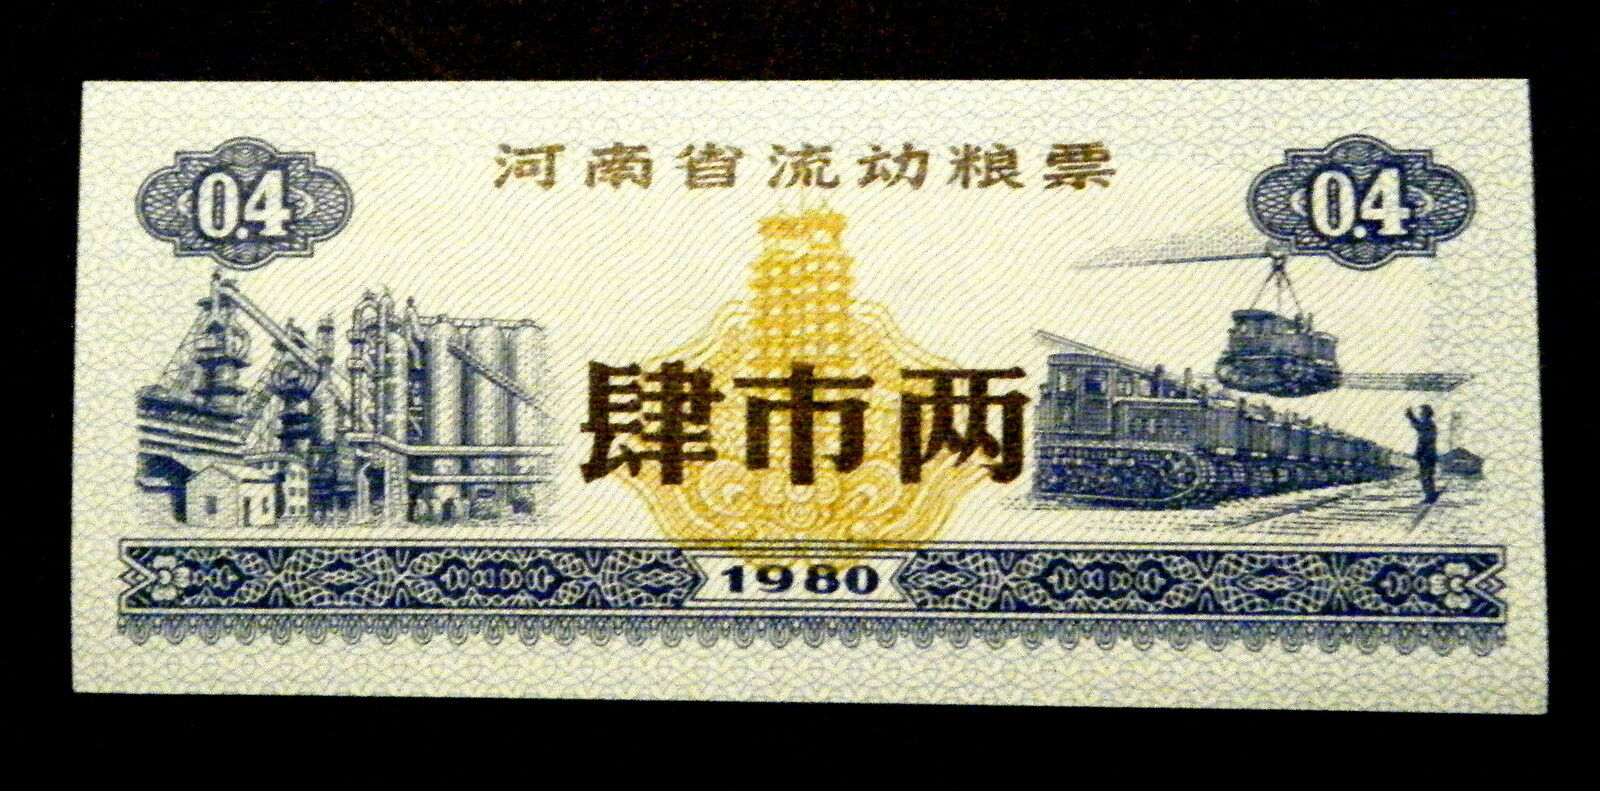 Chine billet chambre de commerce coupon de riz sup a for Chambre de commerce france chine